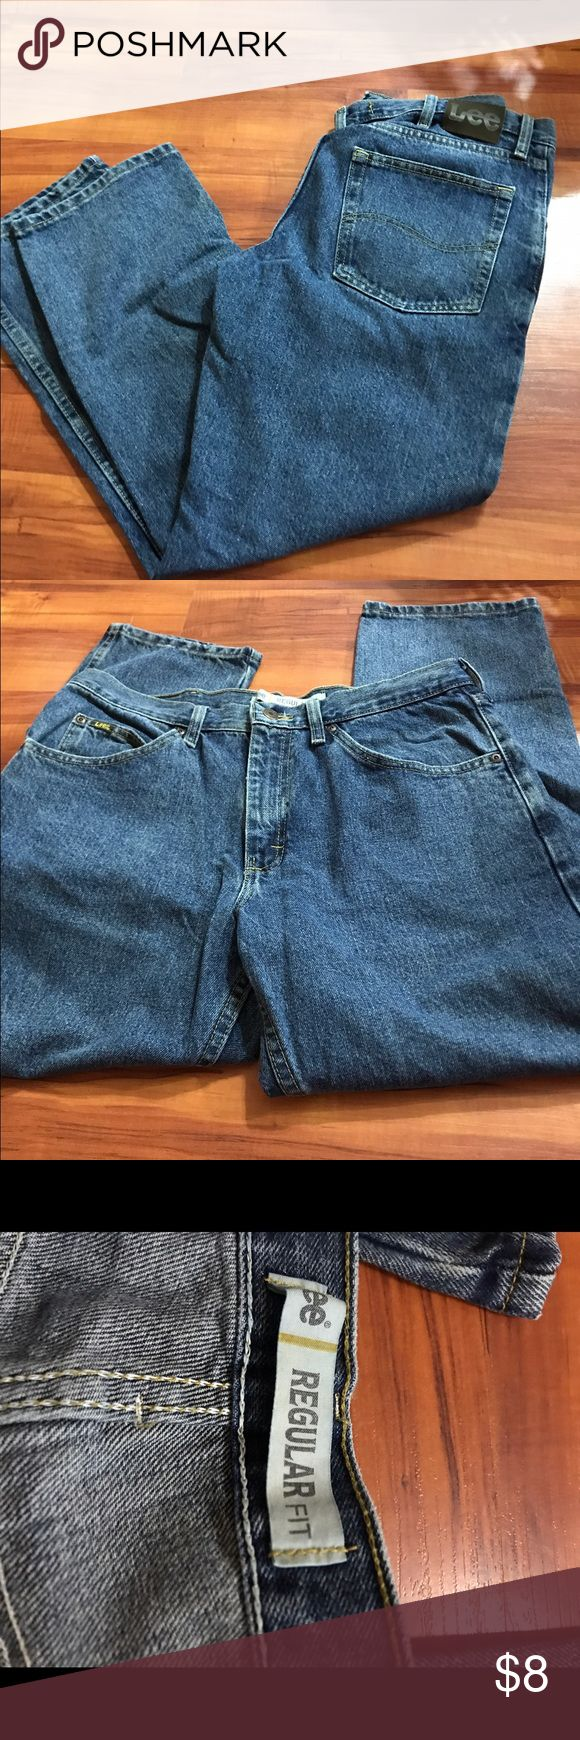 Men's Lee jean Brand is Lee. Size 34x29. Good used condition. No stains or holes that I see Lee Jeans Relaxed